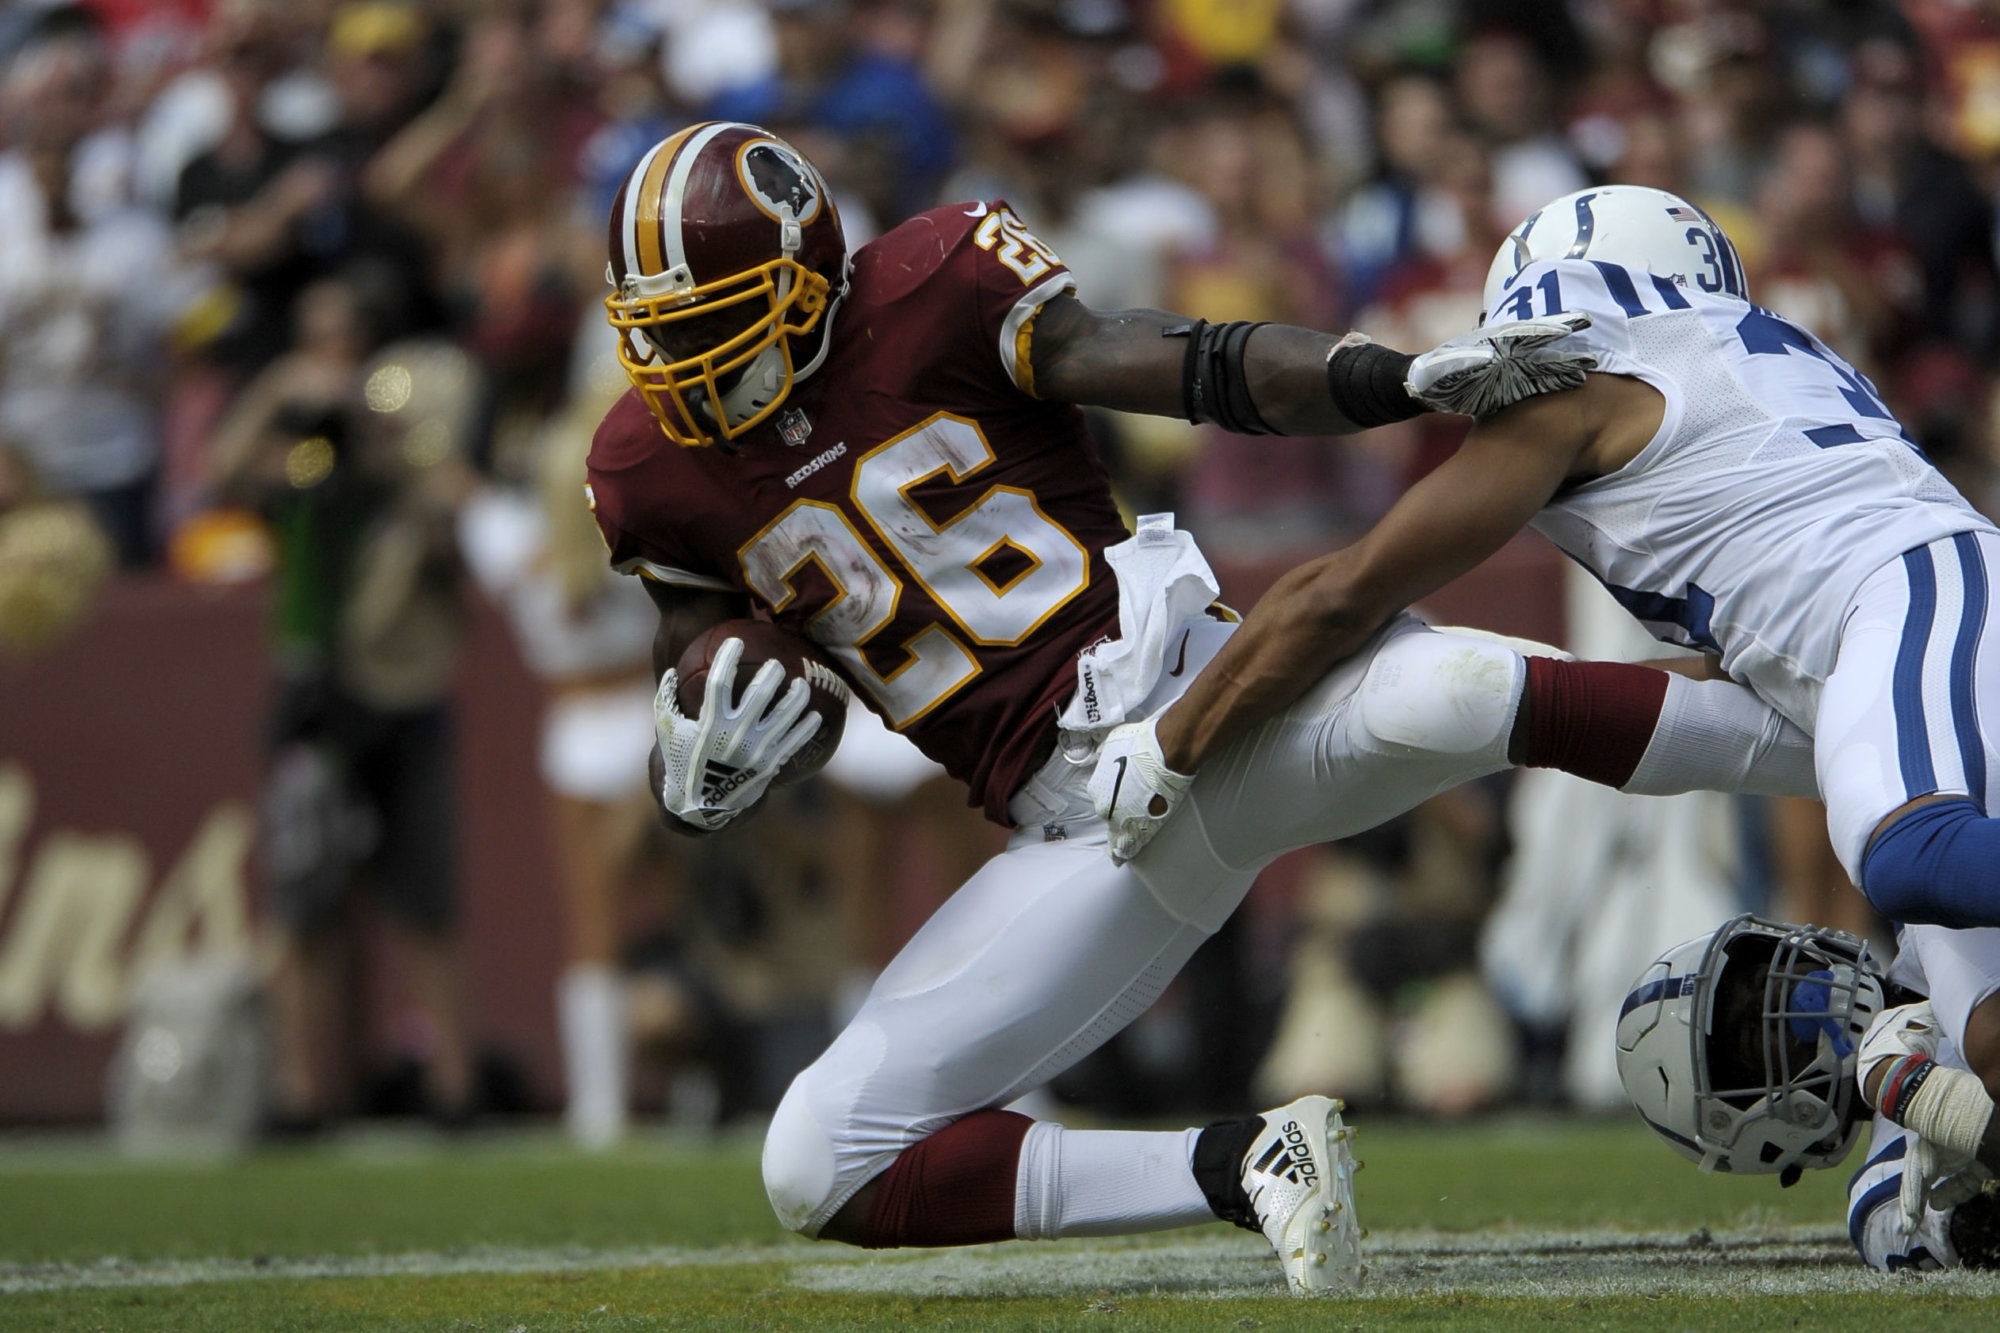 Washington Redskins running back Adrian Peterson (left) is tackled by Indianapolis Colts cornerback Quincy Wilson (right) during an NFL football game between the Indianapolis Colts and Washington Redskins, Sunday, Sept. 16, 2018, in Landover, Md. (AP Photo/Mark Tenally)